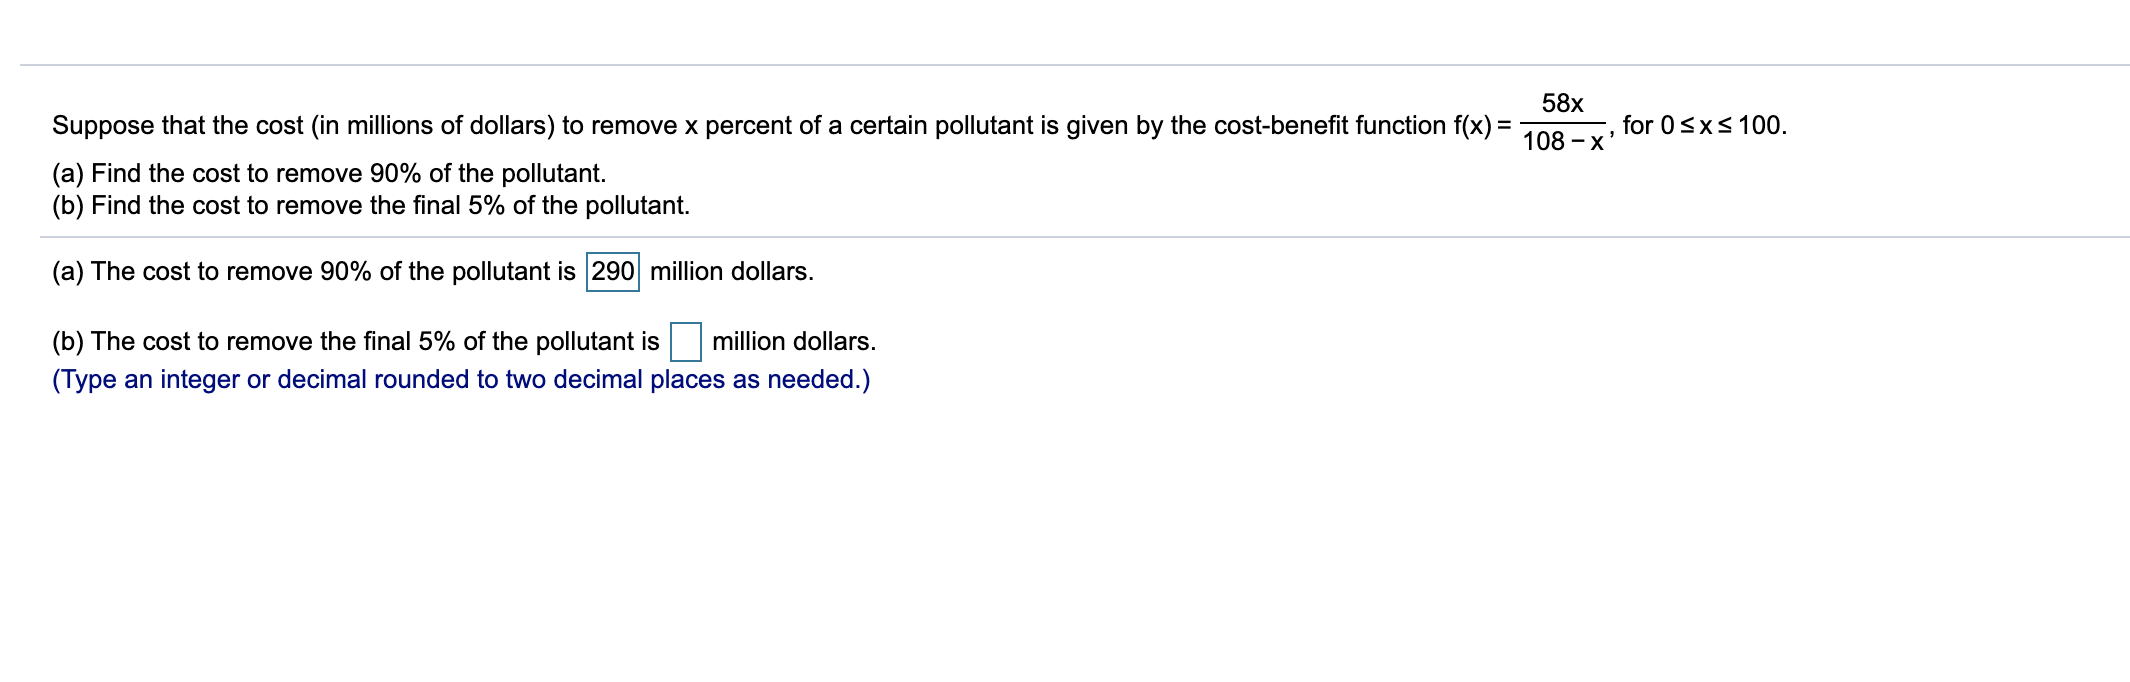 58x Suppose that the cost (in millions of dollars) to remove x percent of a certain pollutant is given by the cost-benefit fu